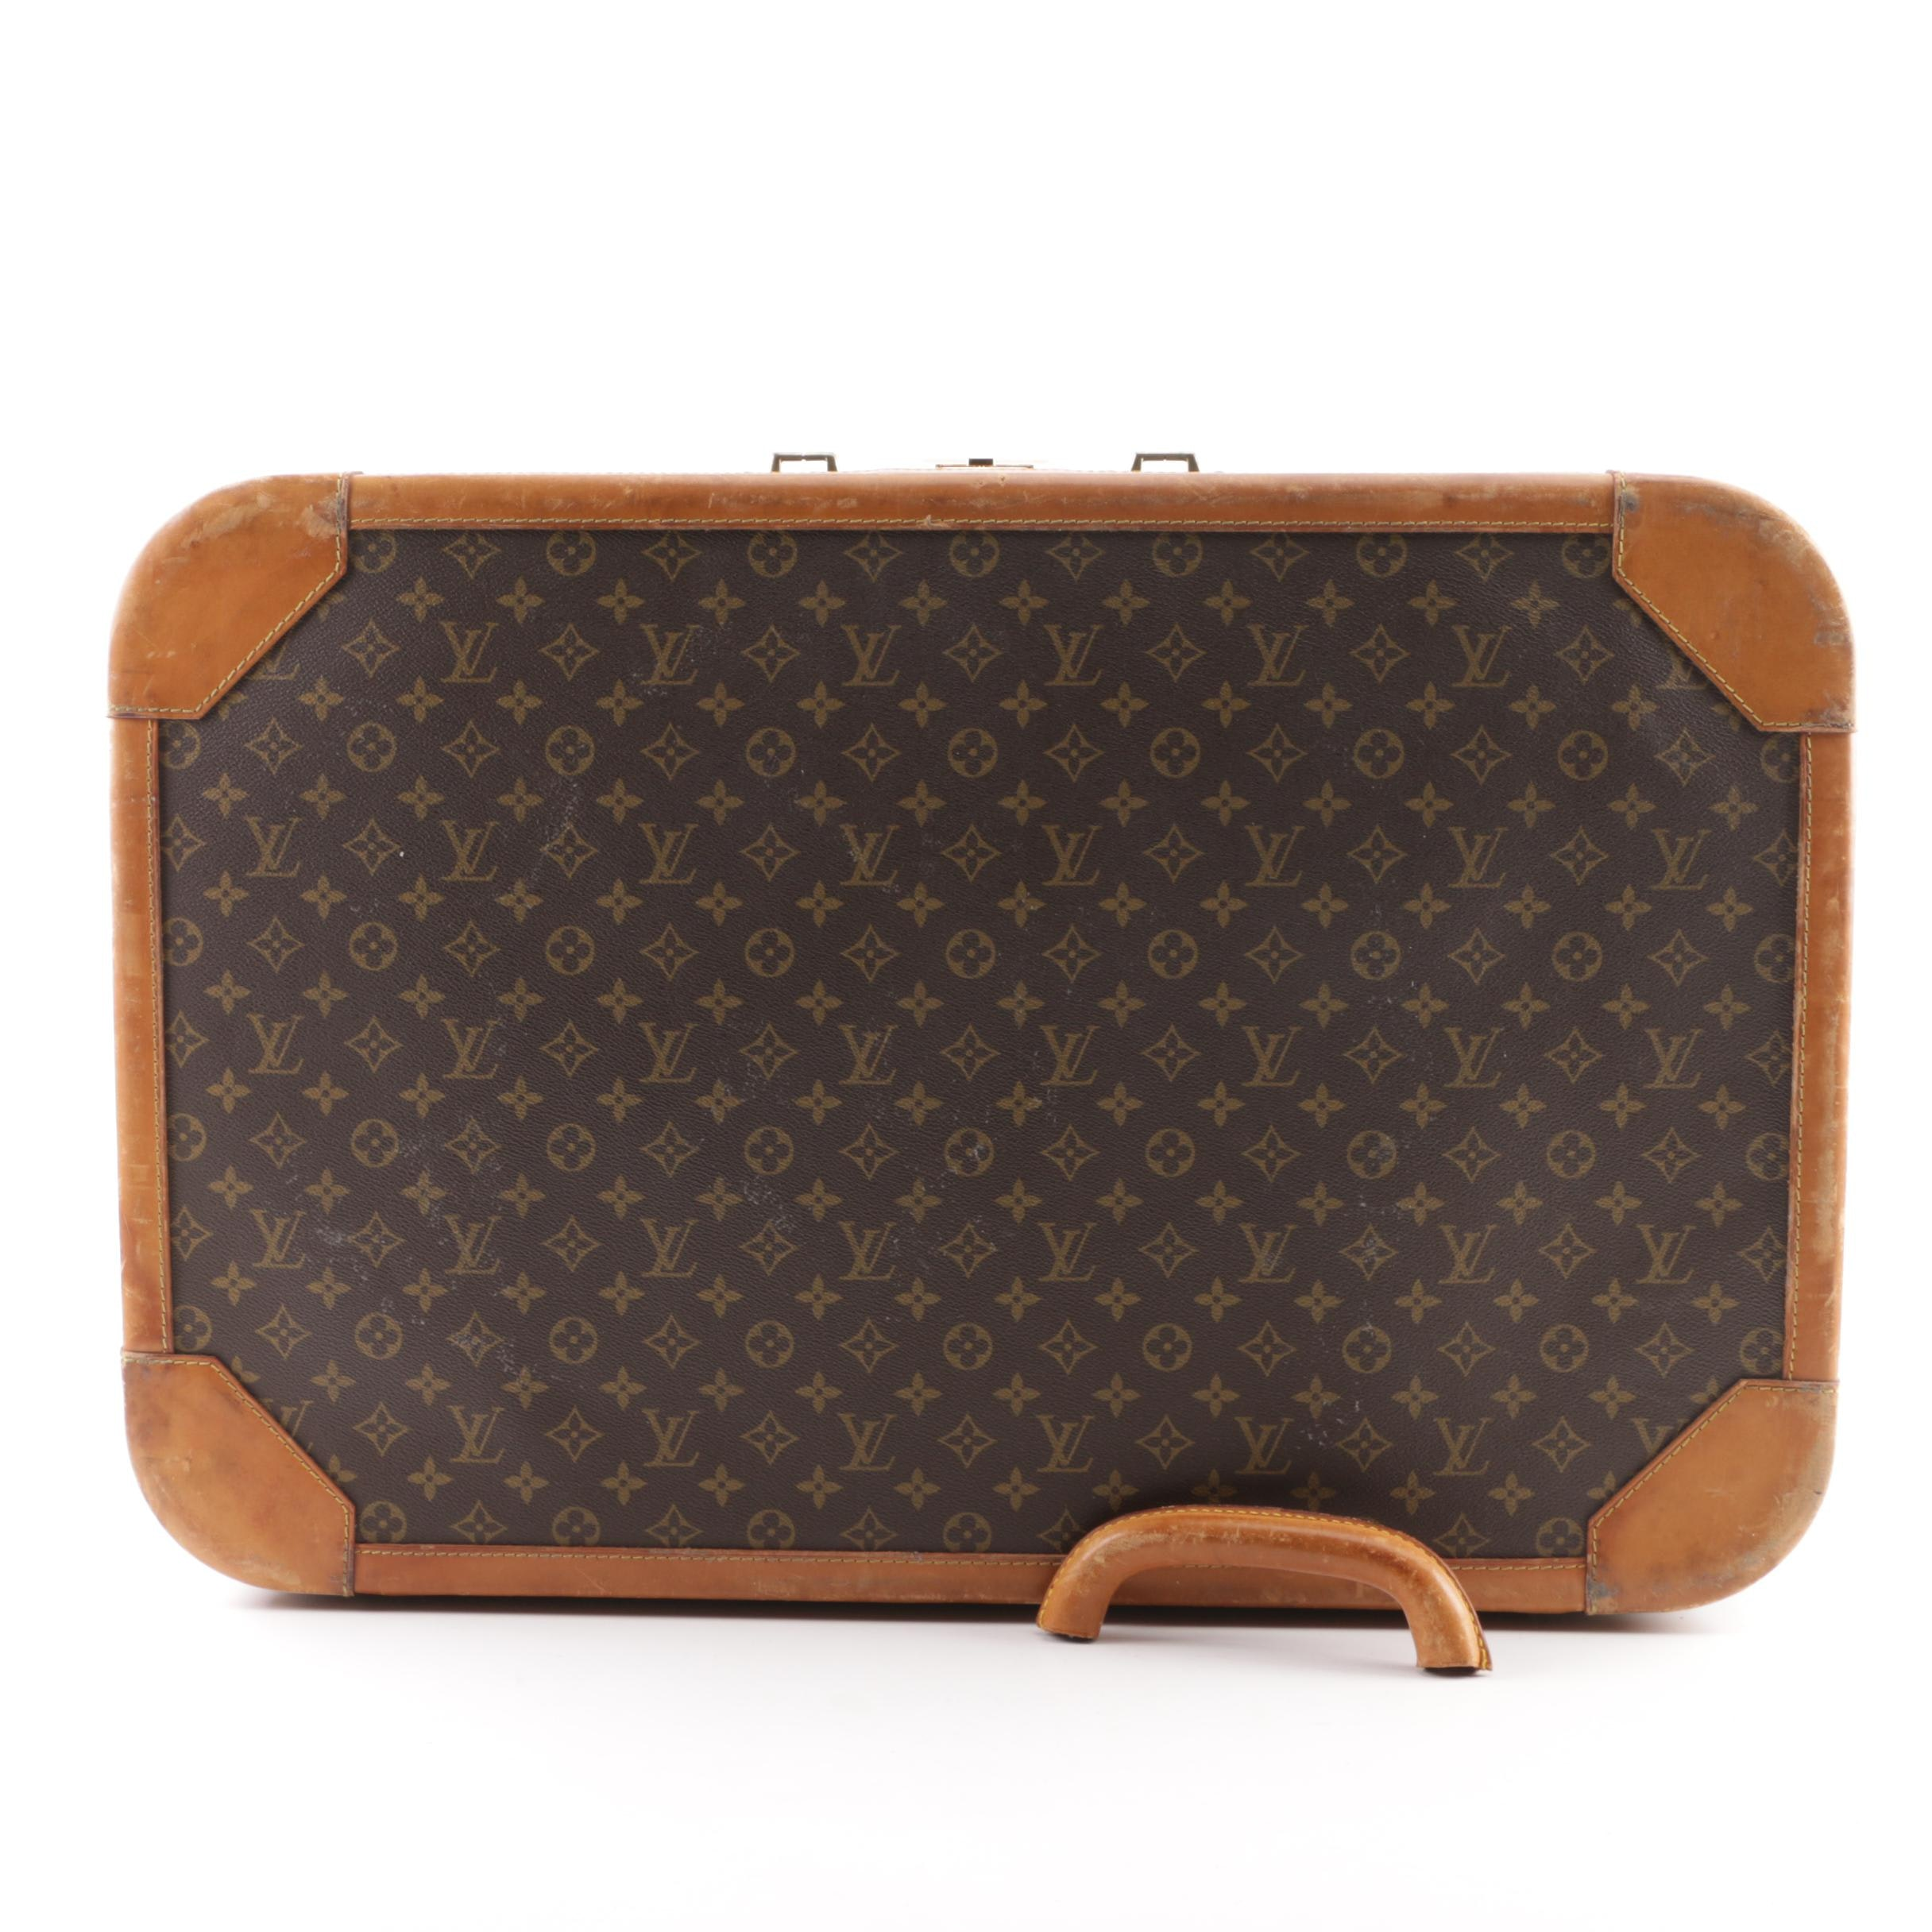 Vintage Louis Vuitton Paris Monogram Canvas Hardtop Suitcase